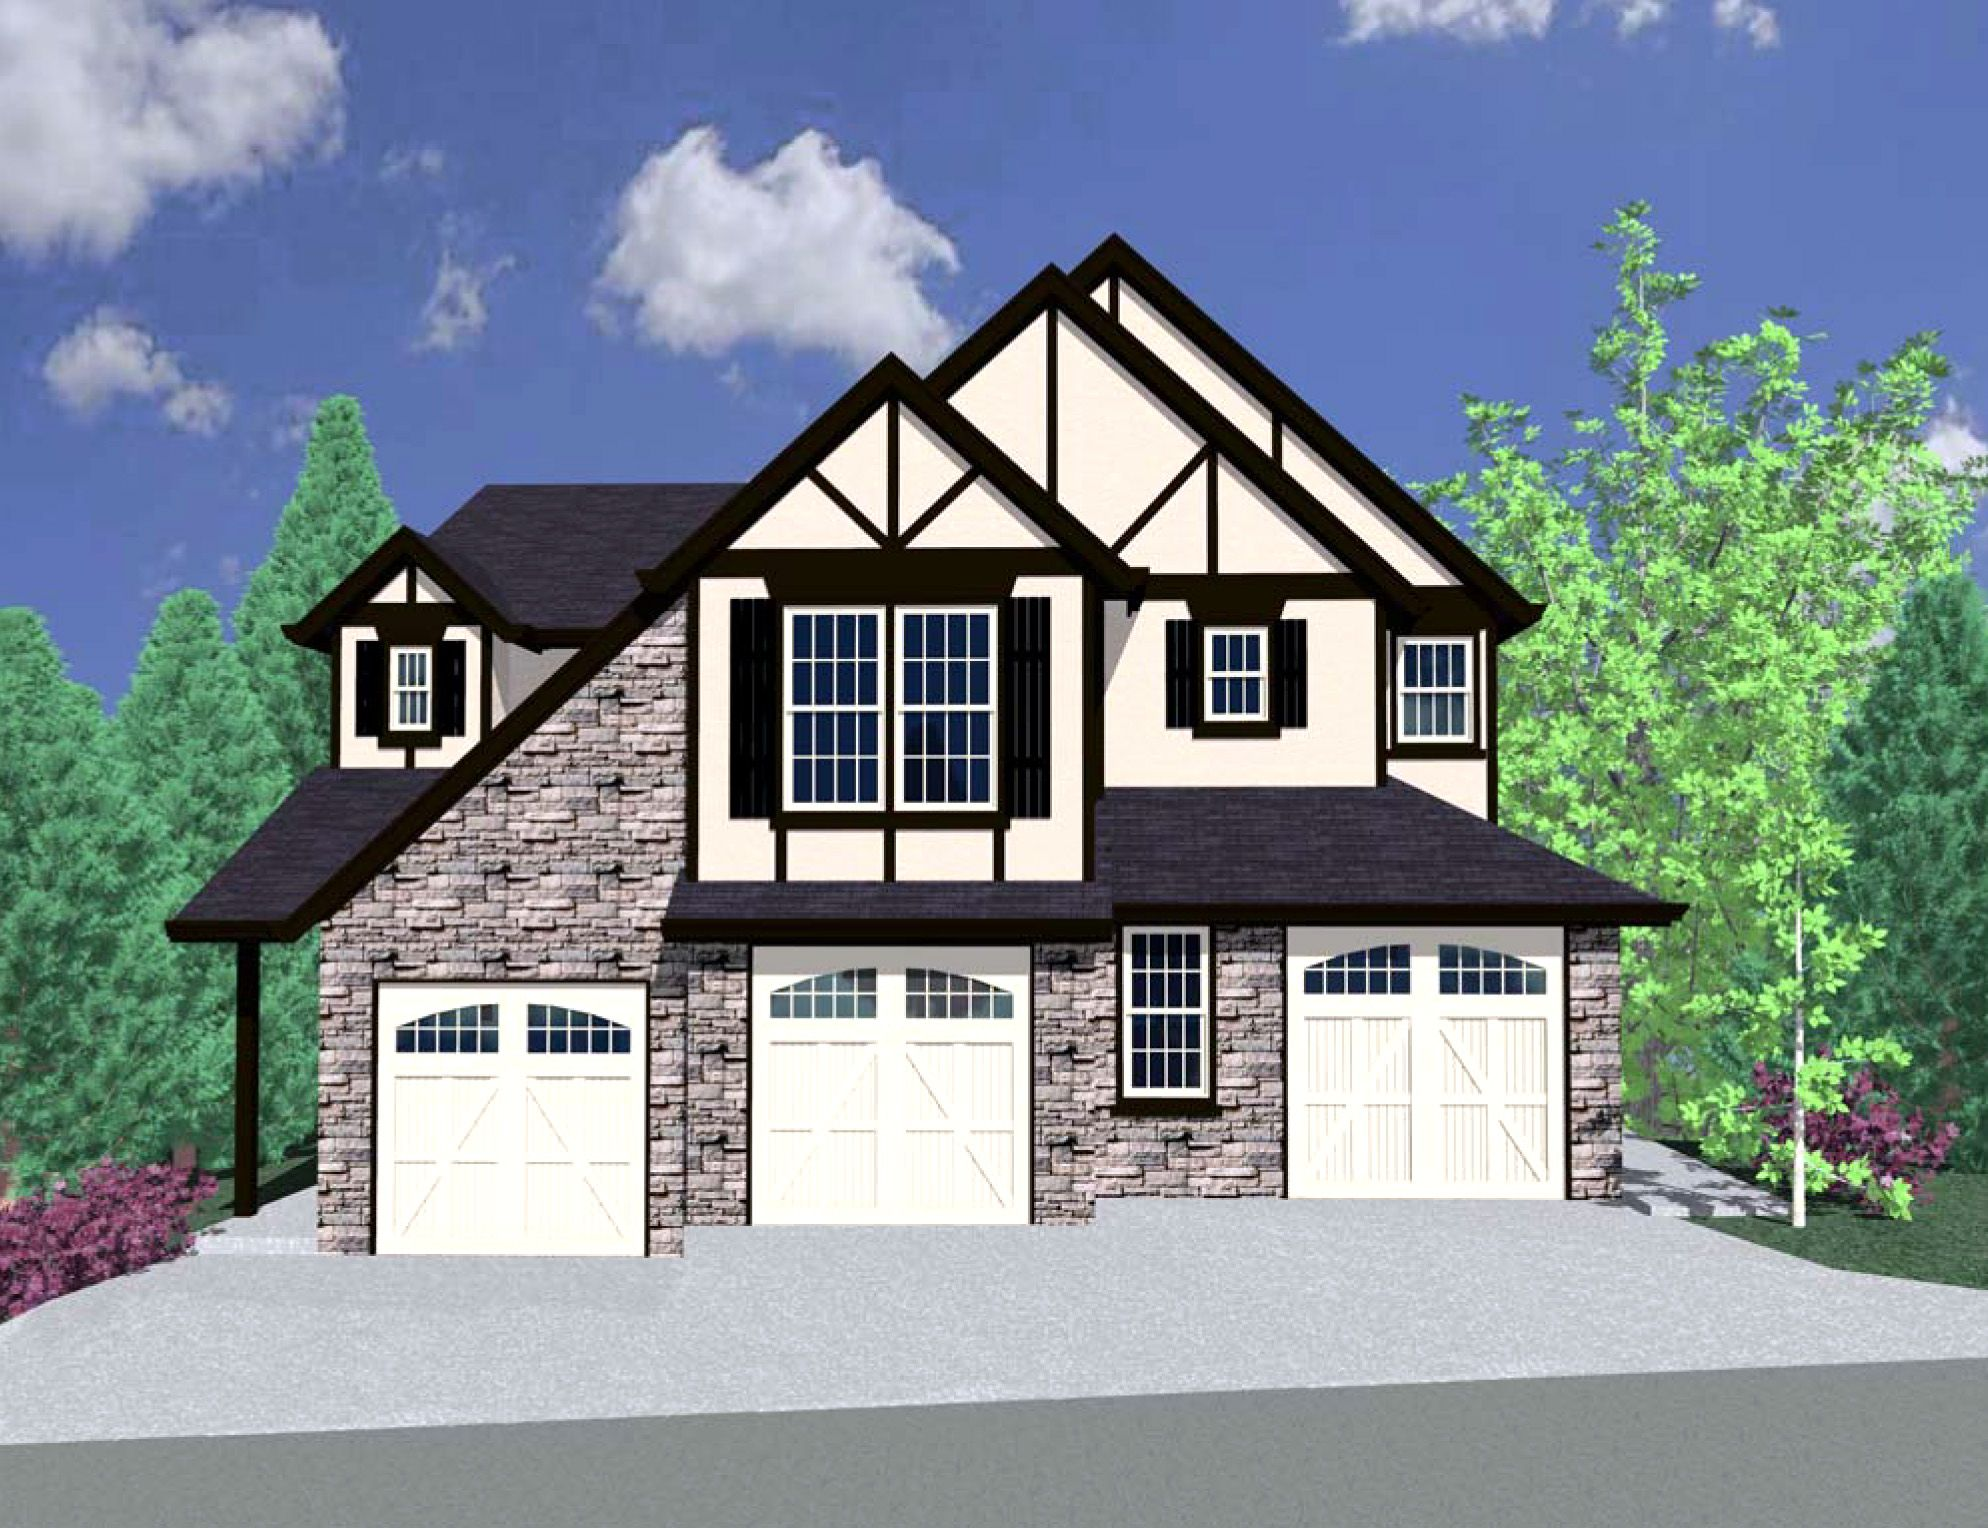 Plan 85056ms tudor triplex house plan house plans for Triplex plans for narrow lots